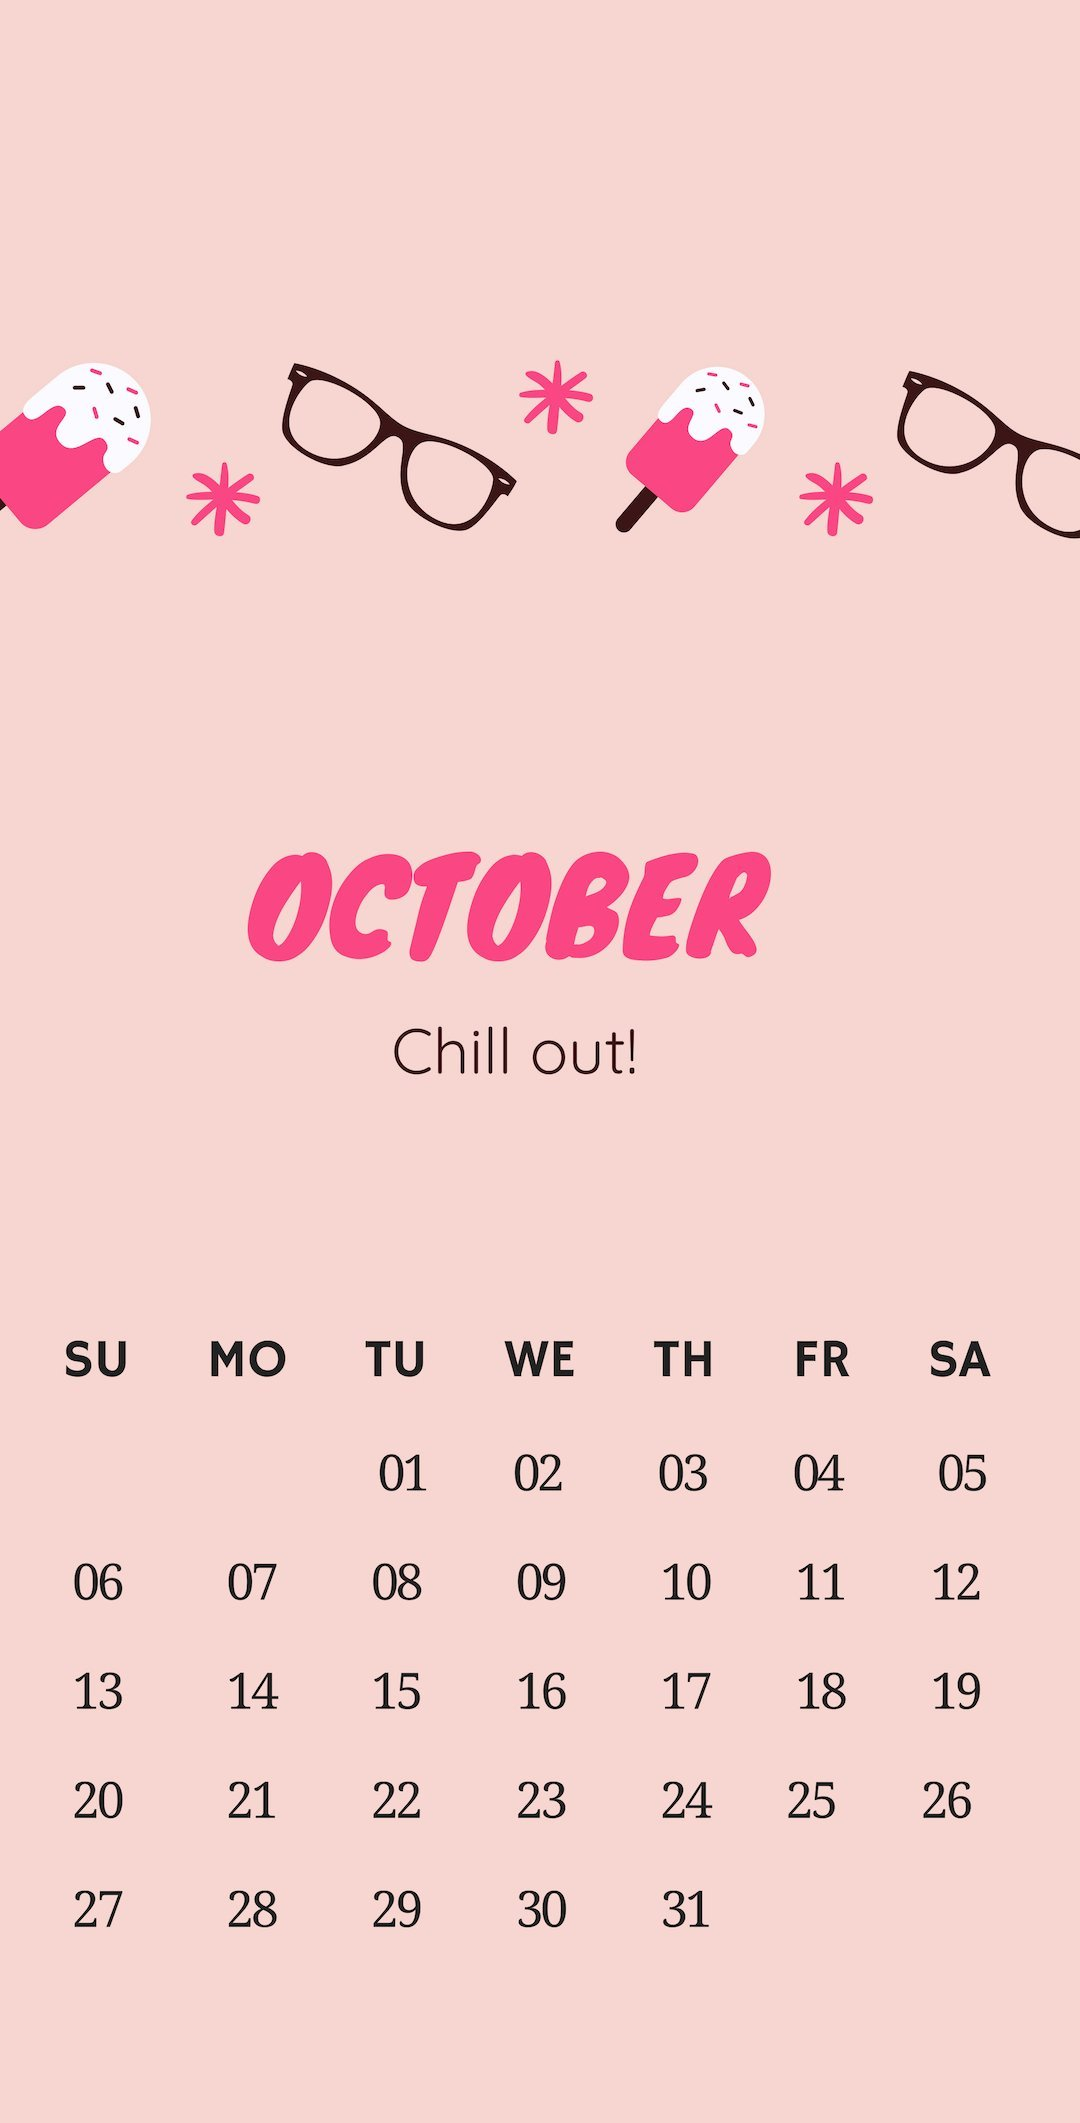 October 2019 iPhone Pink Calendar Wallpaper